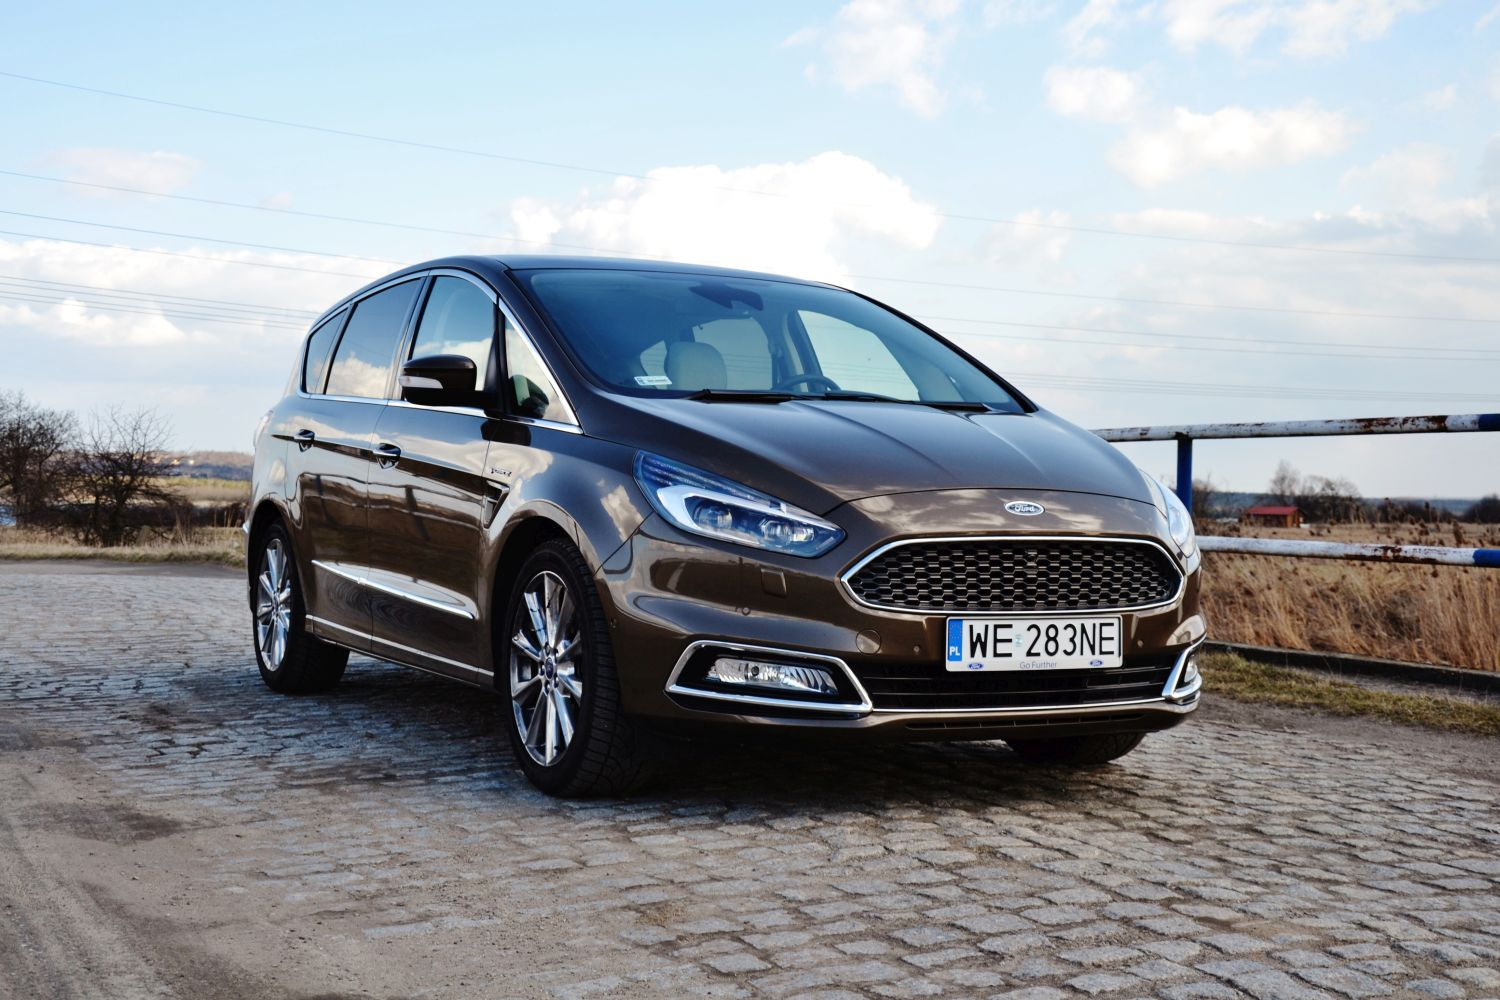 ford s max 2 0 tdci powershift awd vignale luksus rodzinny namasce. Black Bedroom Furniture Sets. Home Design Ideas